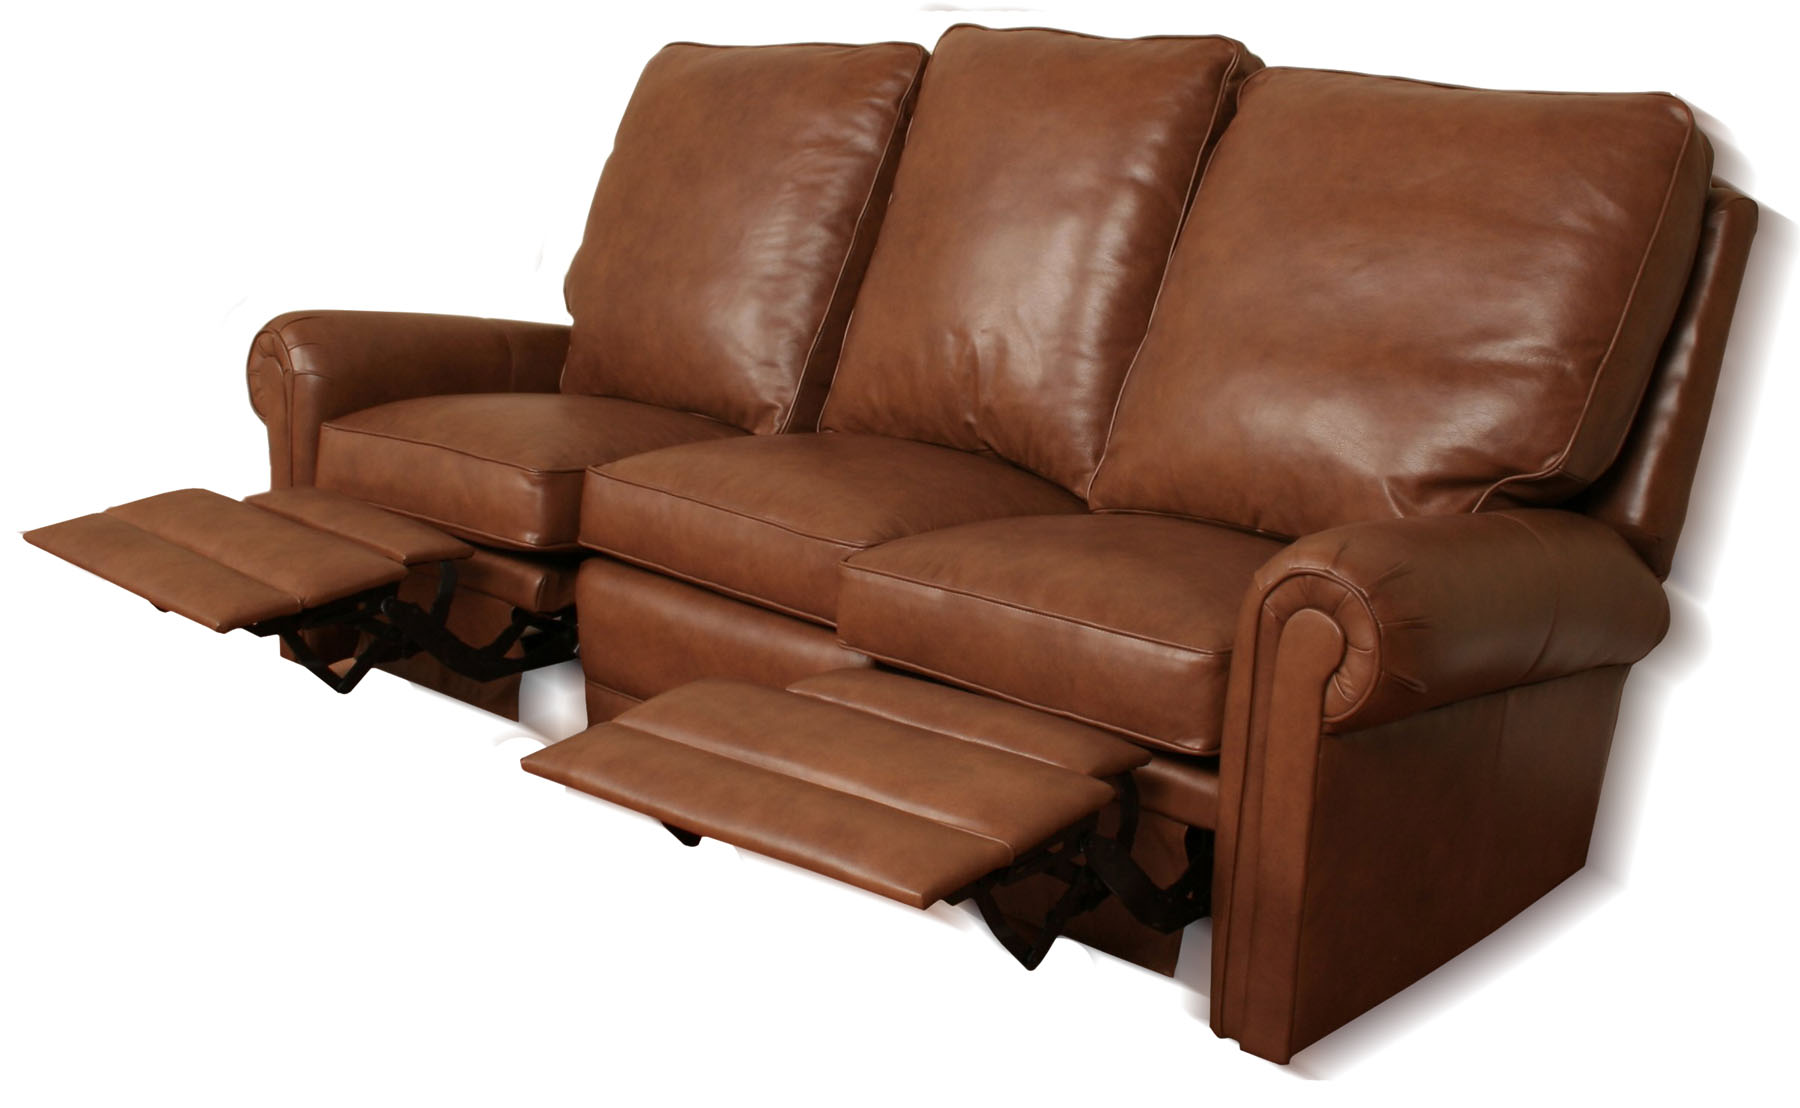 Elegant Reclining Leather Sofa 79 In Sofa Room Ideas With Reclining Leather  Sofa